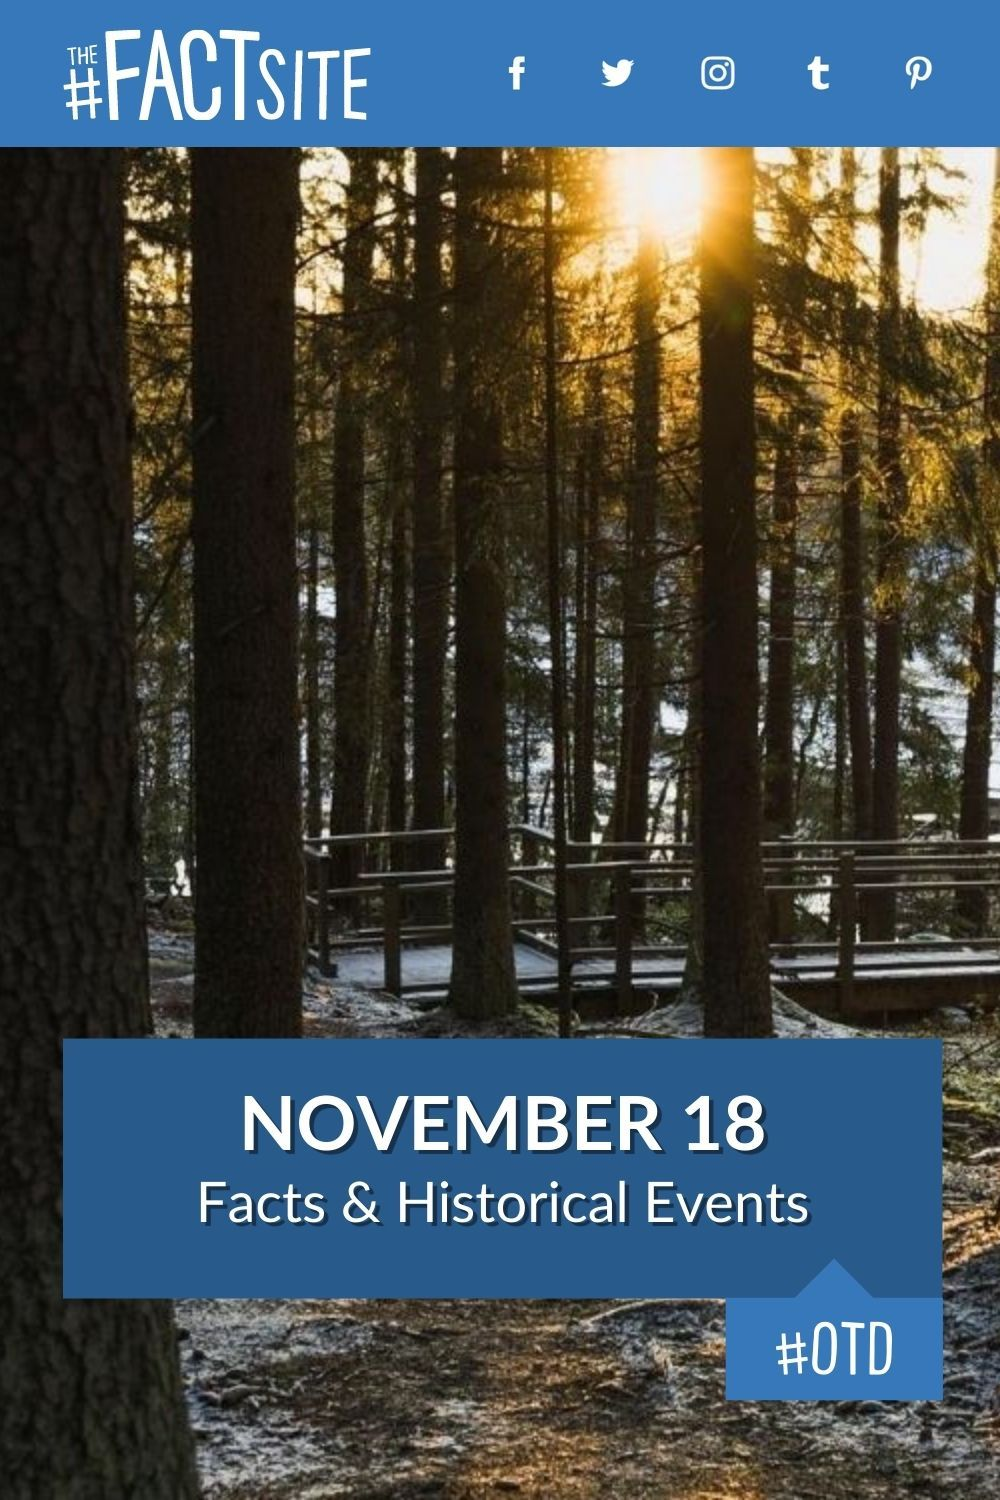 Facts & Historic Events That Happened on November 18